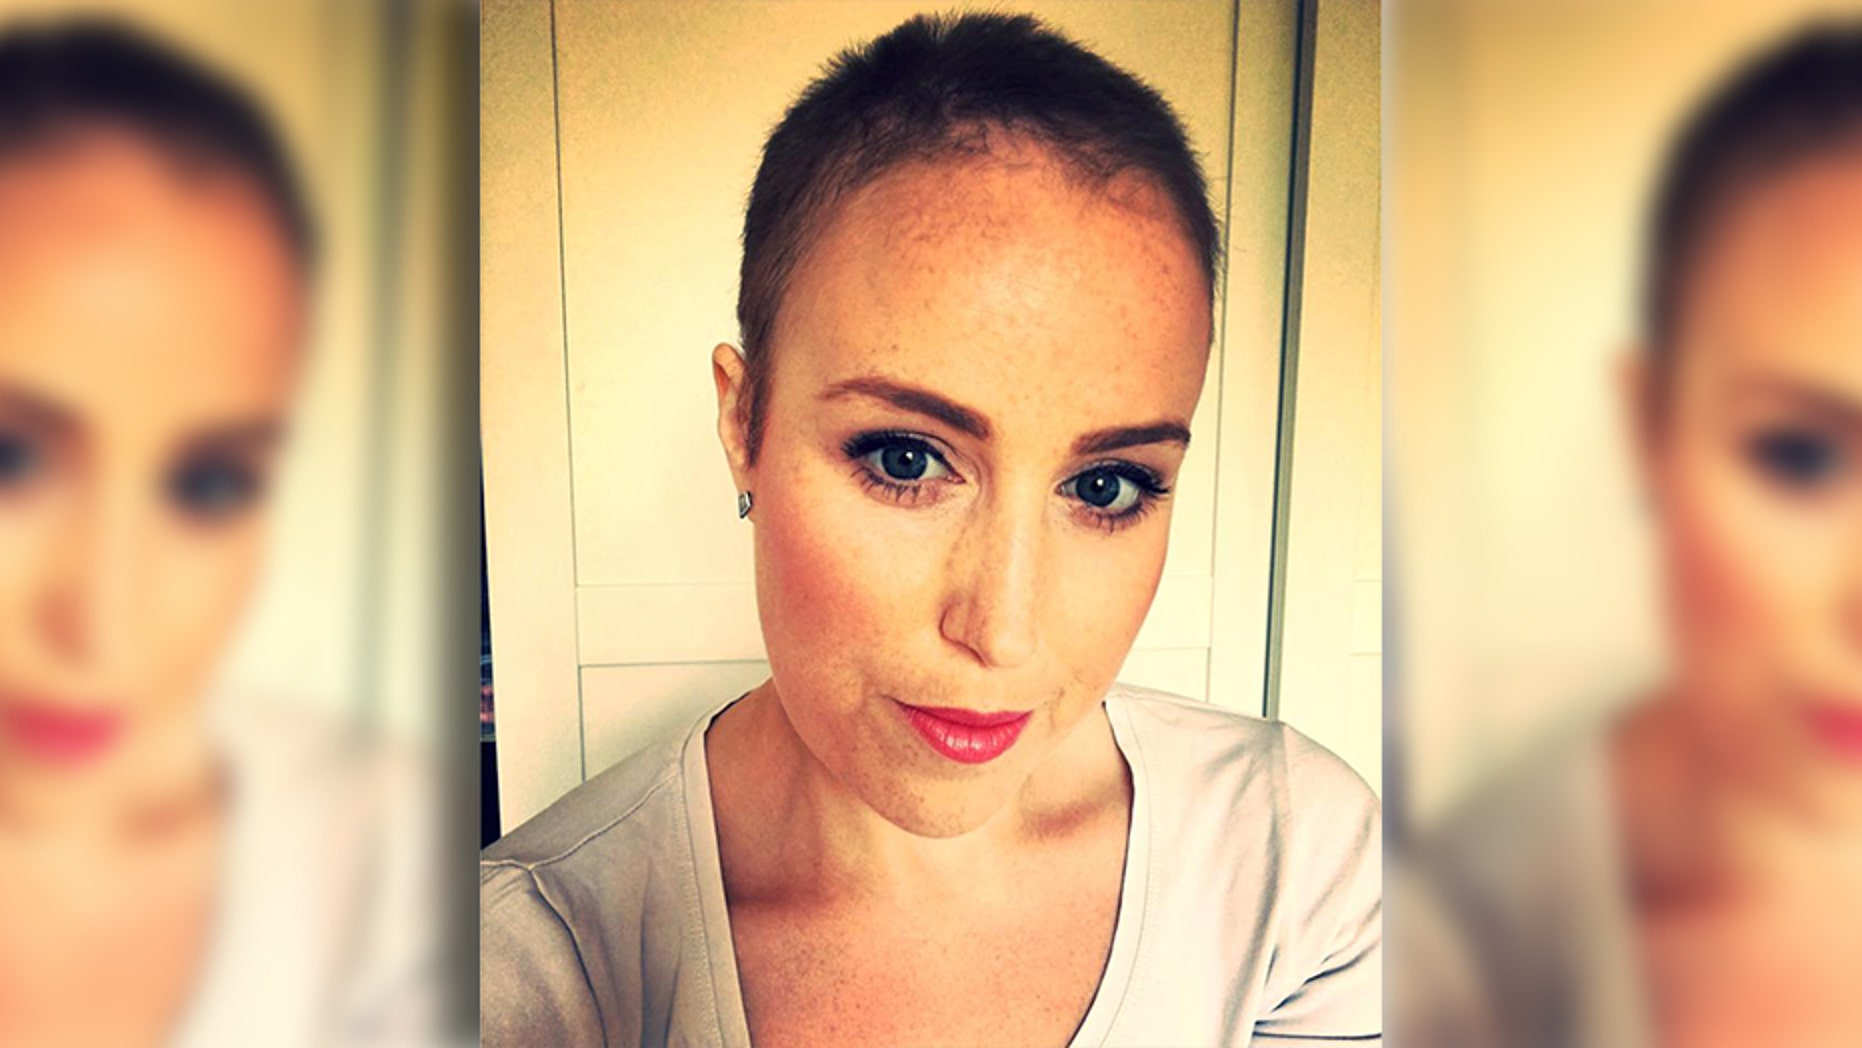 Louise Gleadell was diagnosed with cervical cancer just nine months after her youngest son was born.